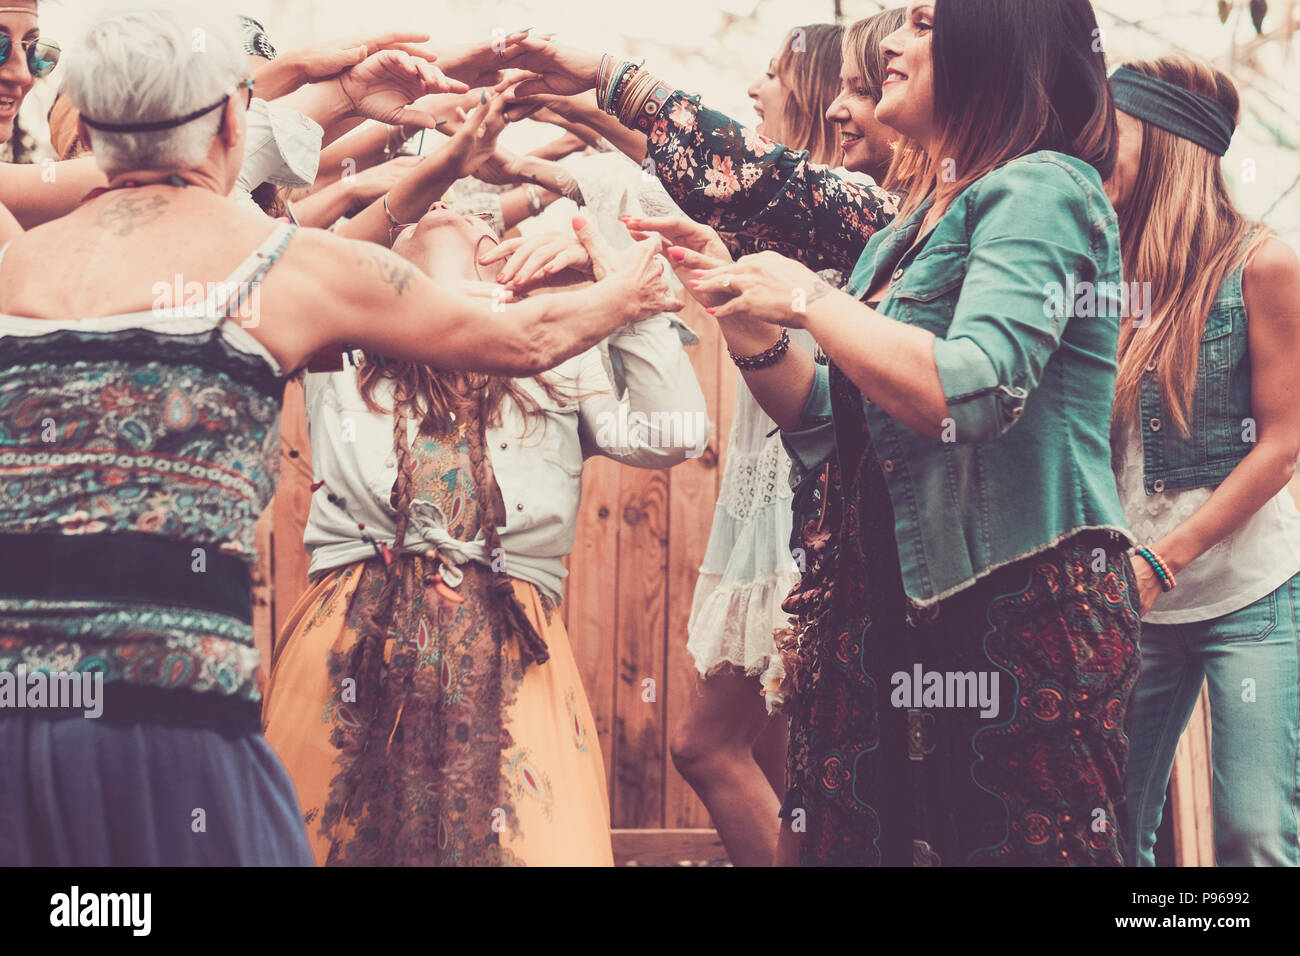 group of free and hippy rebel alternative style young women together dancing and celebrating with joy and happiness in a natural place indoor and outd - Stock Image